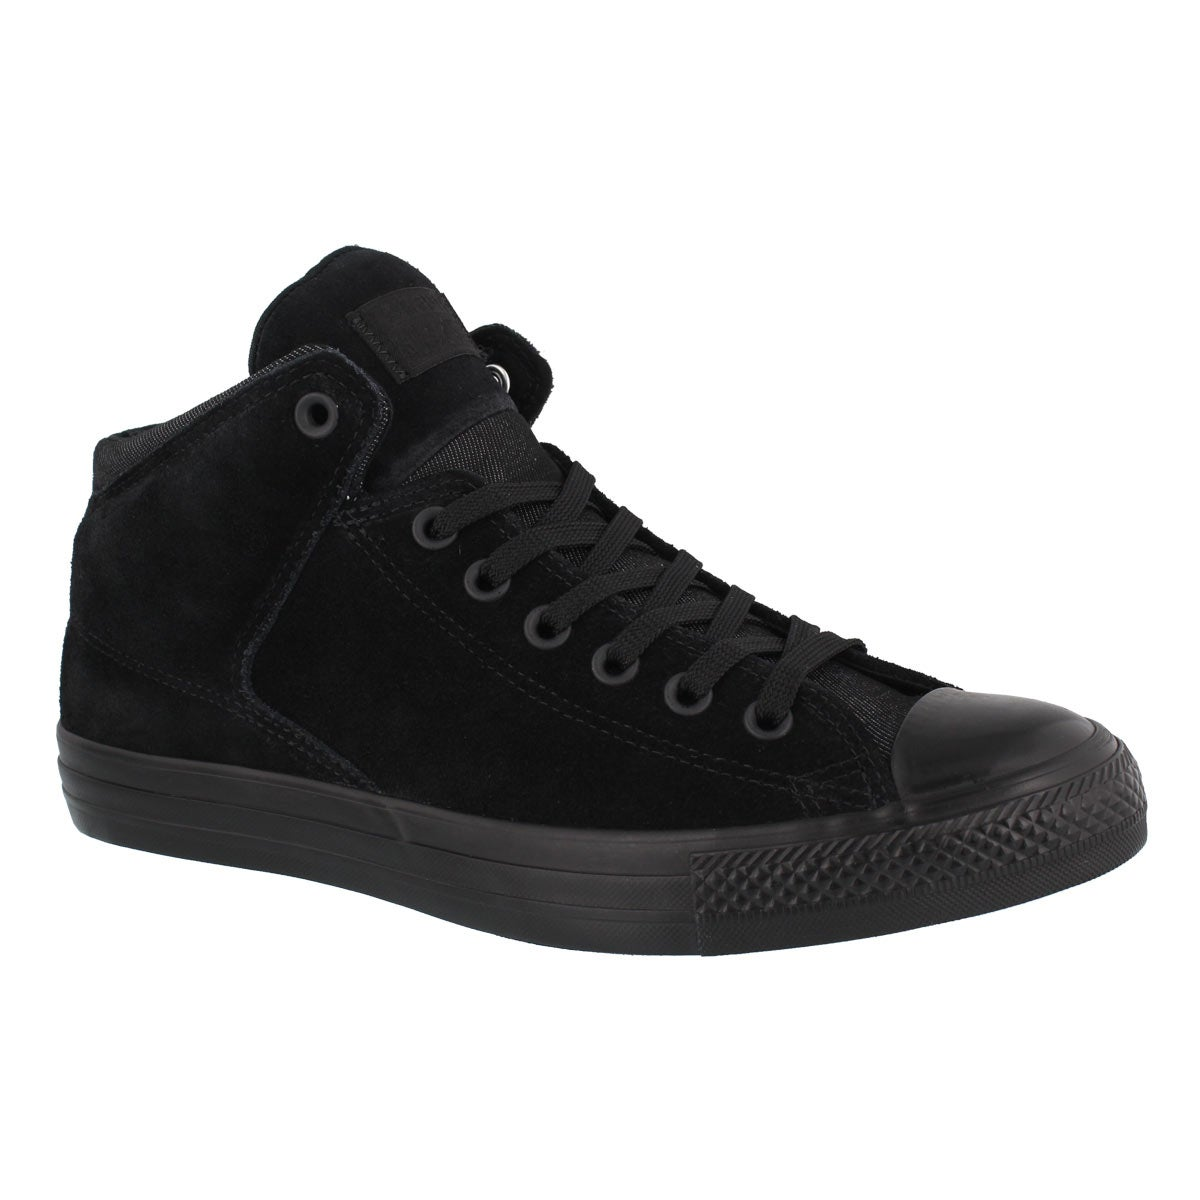 Men's CT ALL STAR HIGH STREET MID blk sneakers